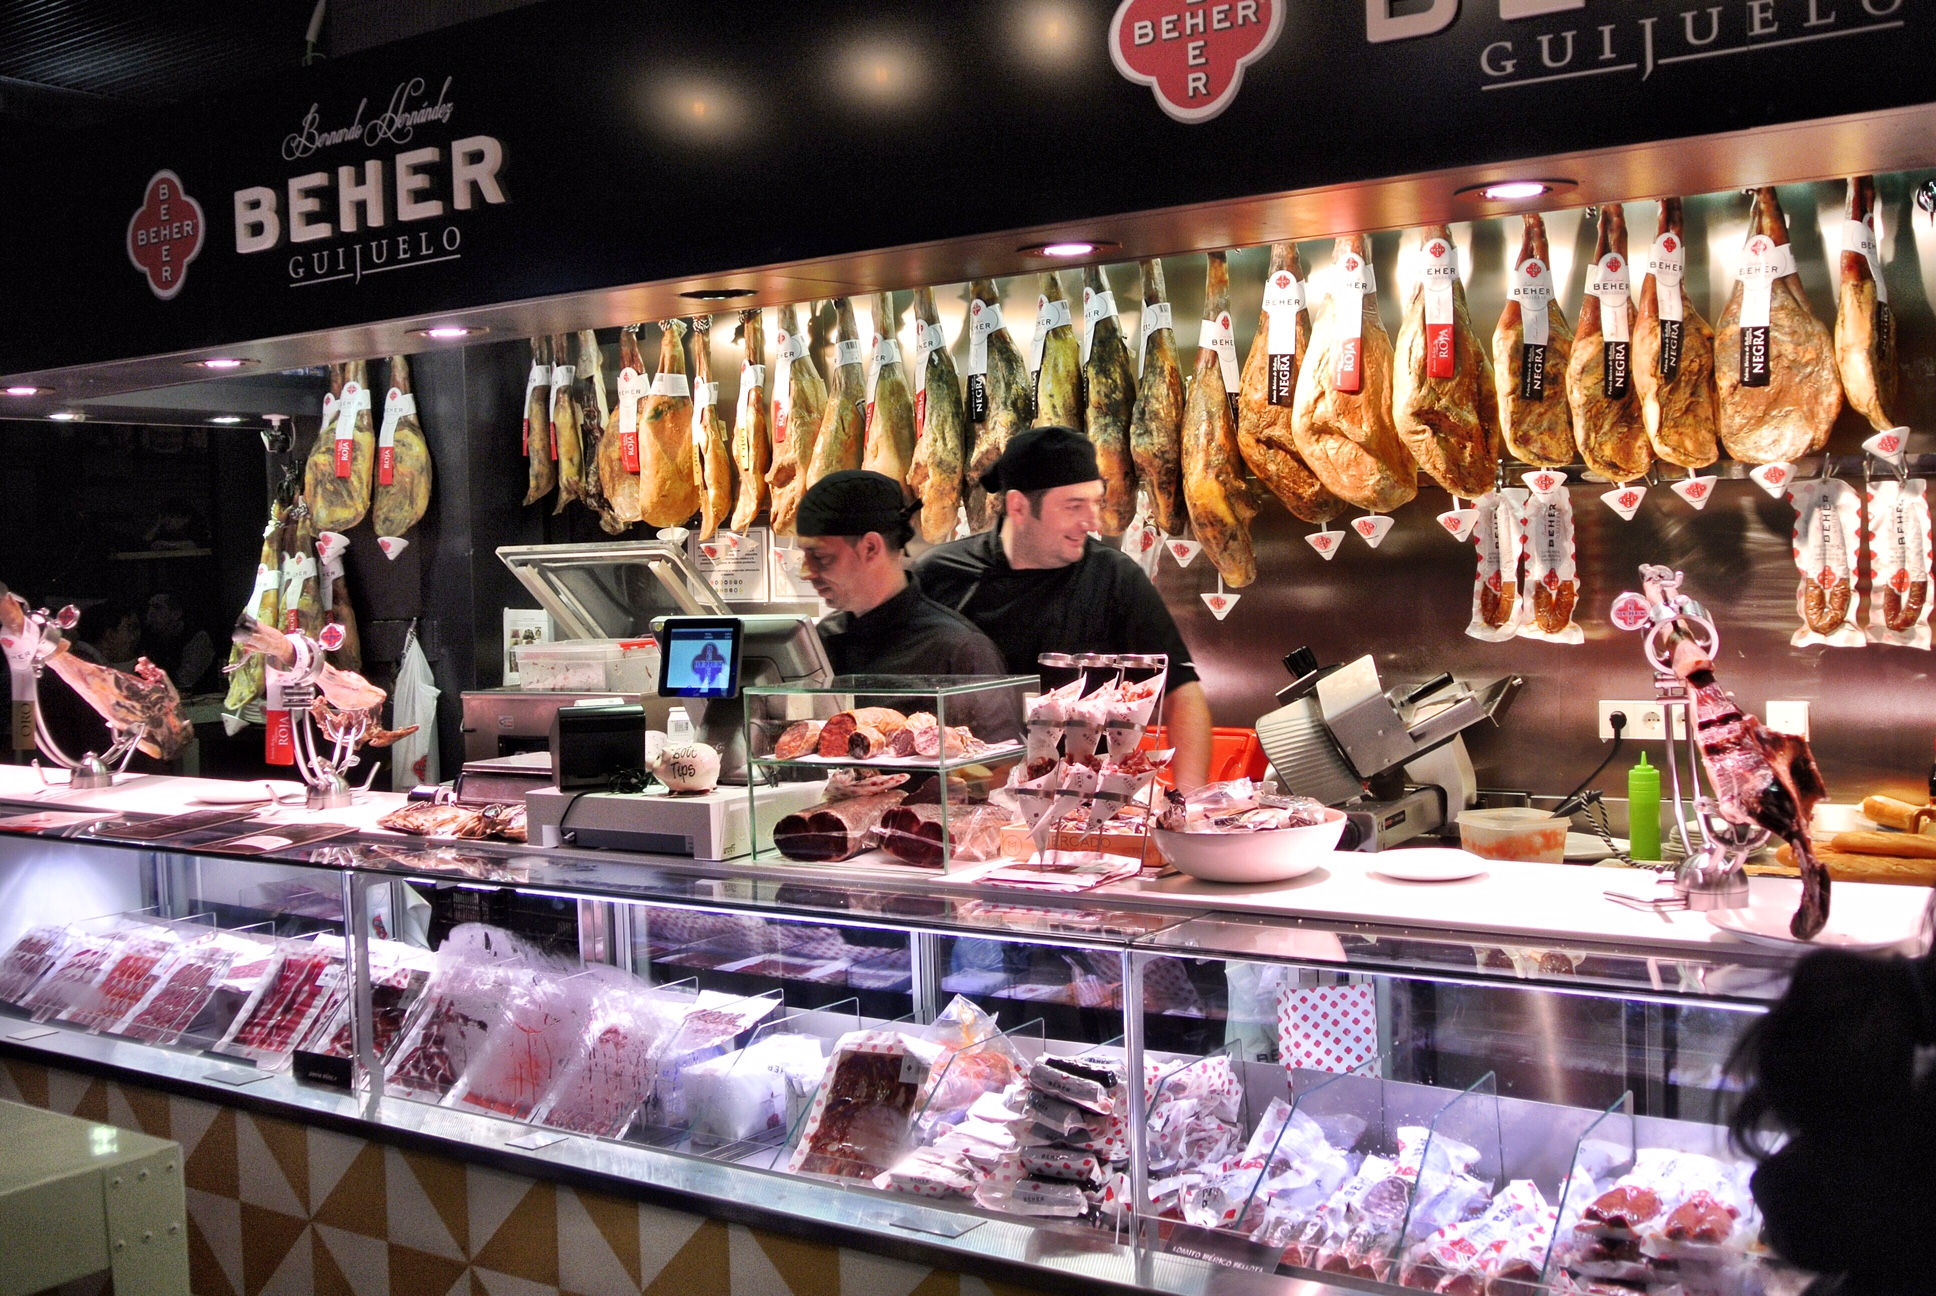 Dining options galore (and farmers' market shopping during the day) at the Mercado de la Merced in Málaga, Spain